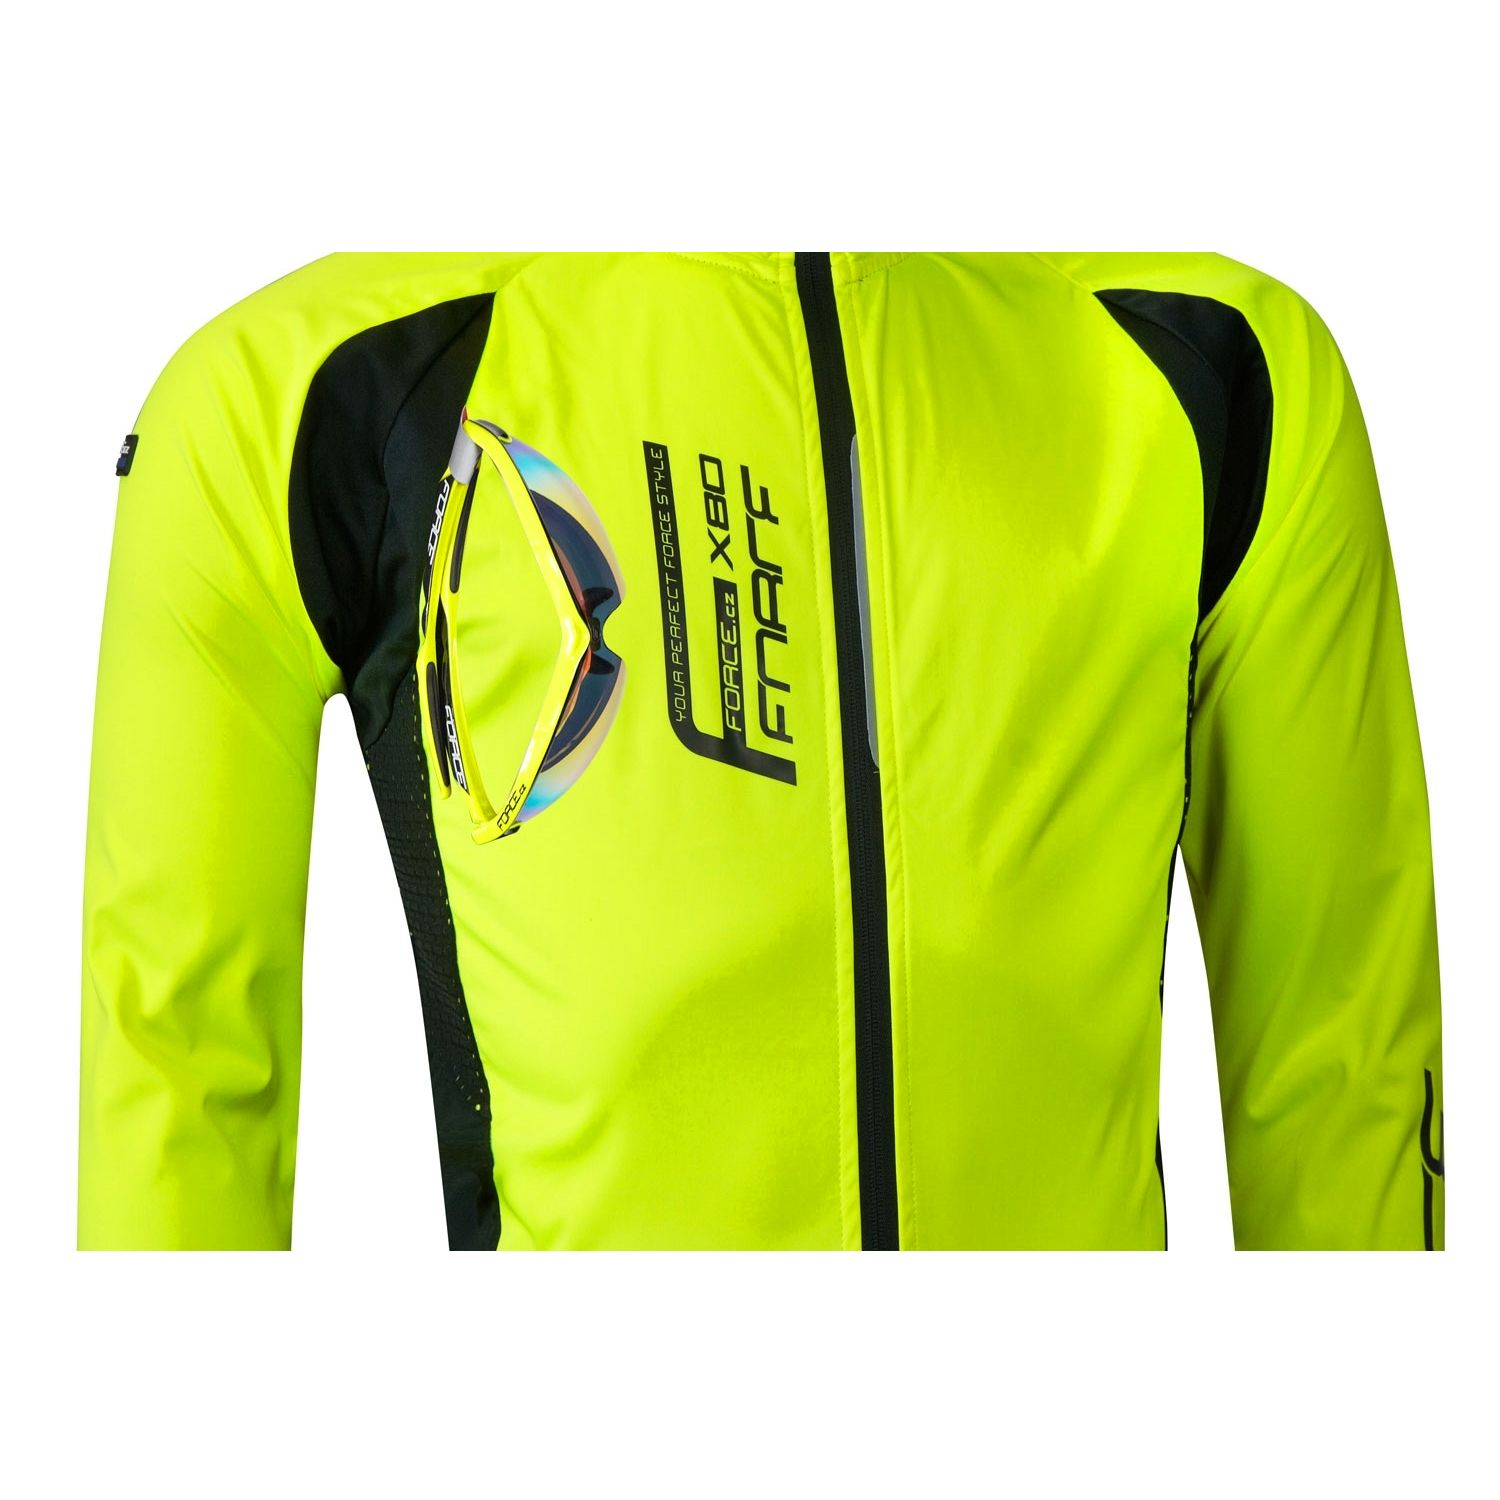 e76d62453 Force X80 Softshell cycling jacket yellow fluo (90006). Next